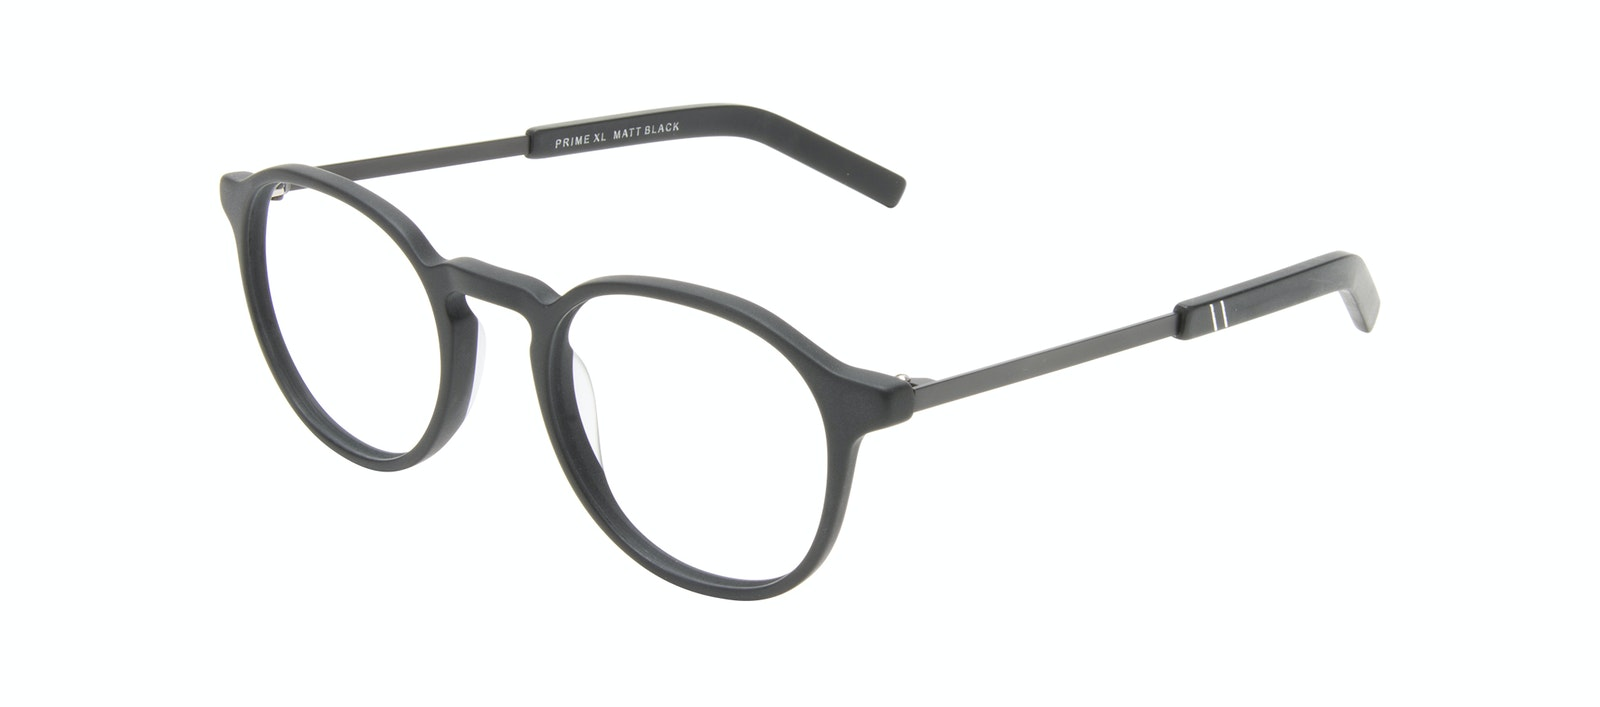 Affordable Fashion Glasses Round Eyeglasses Men Prime XL Matte Black Tilt